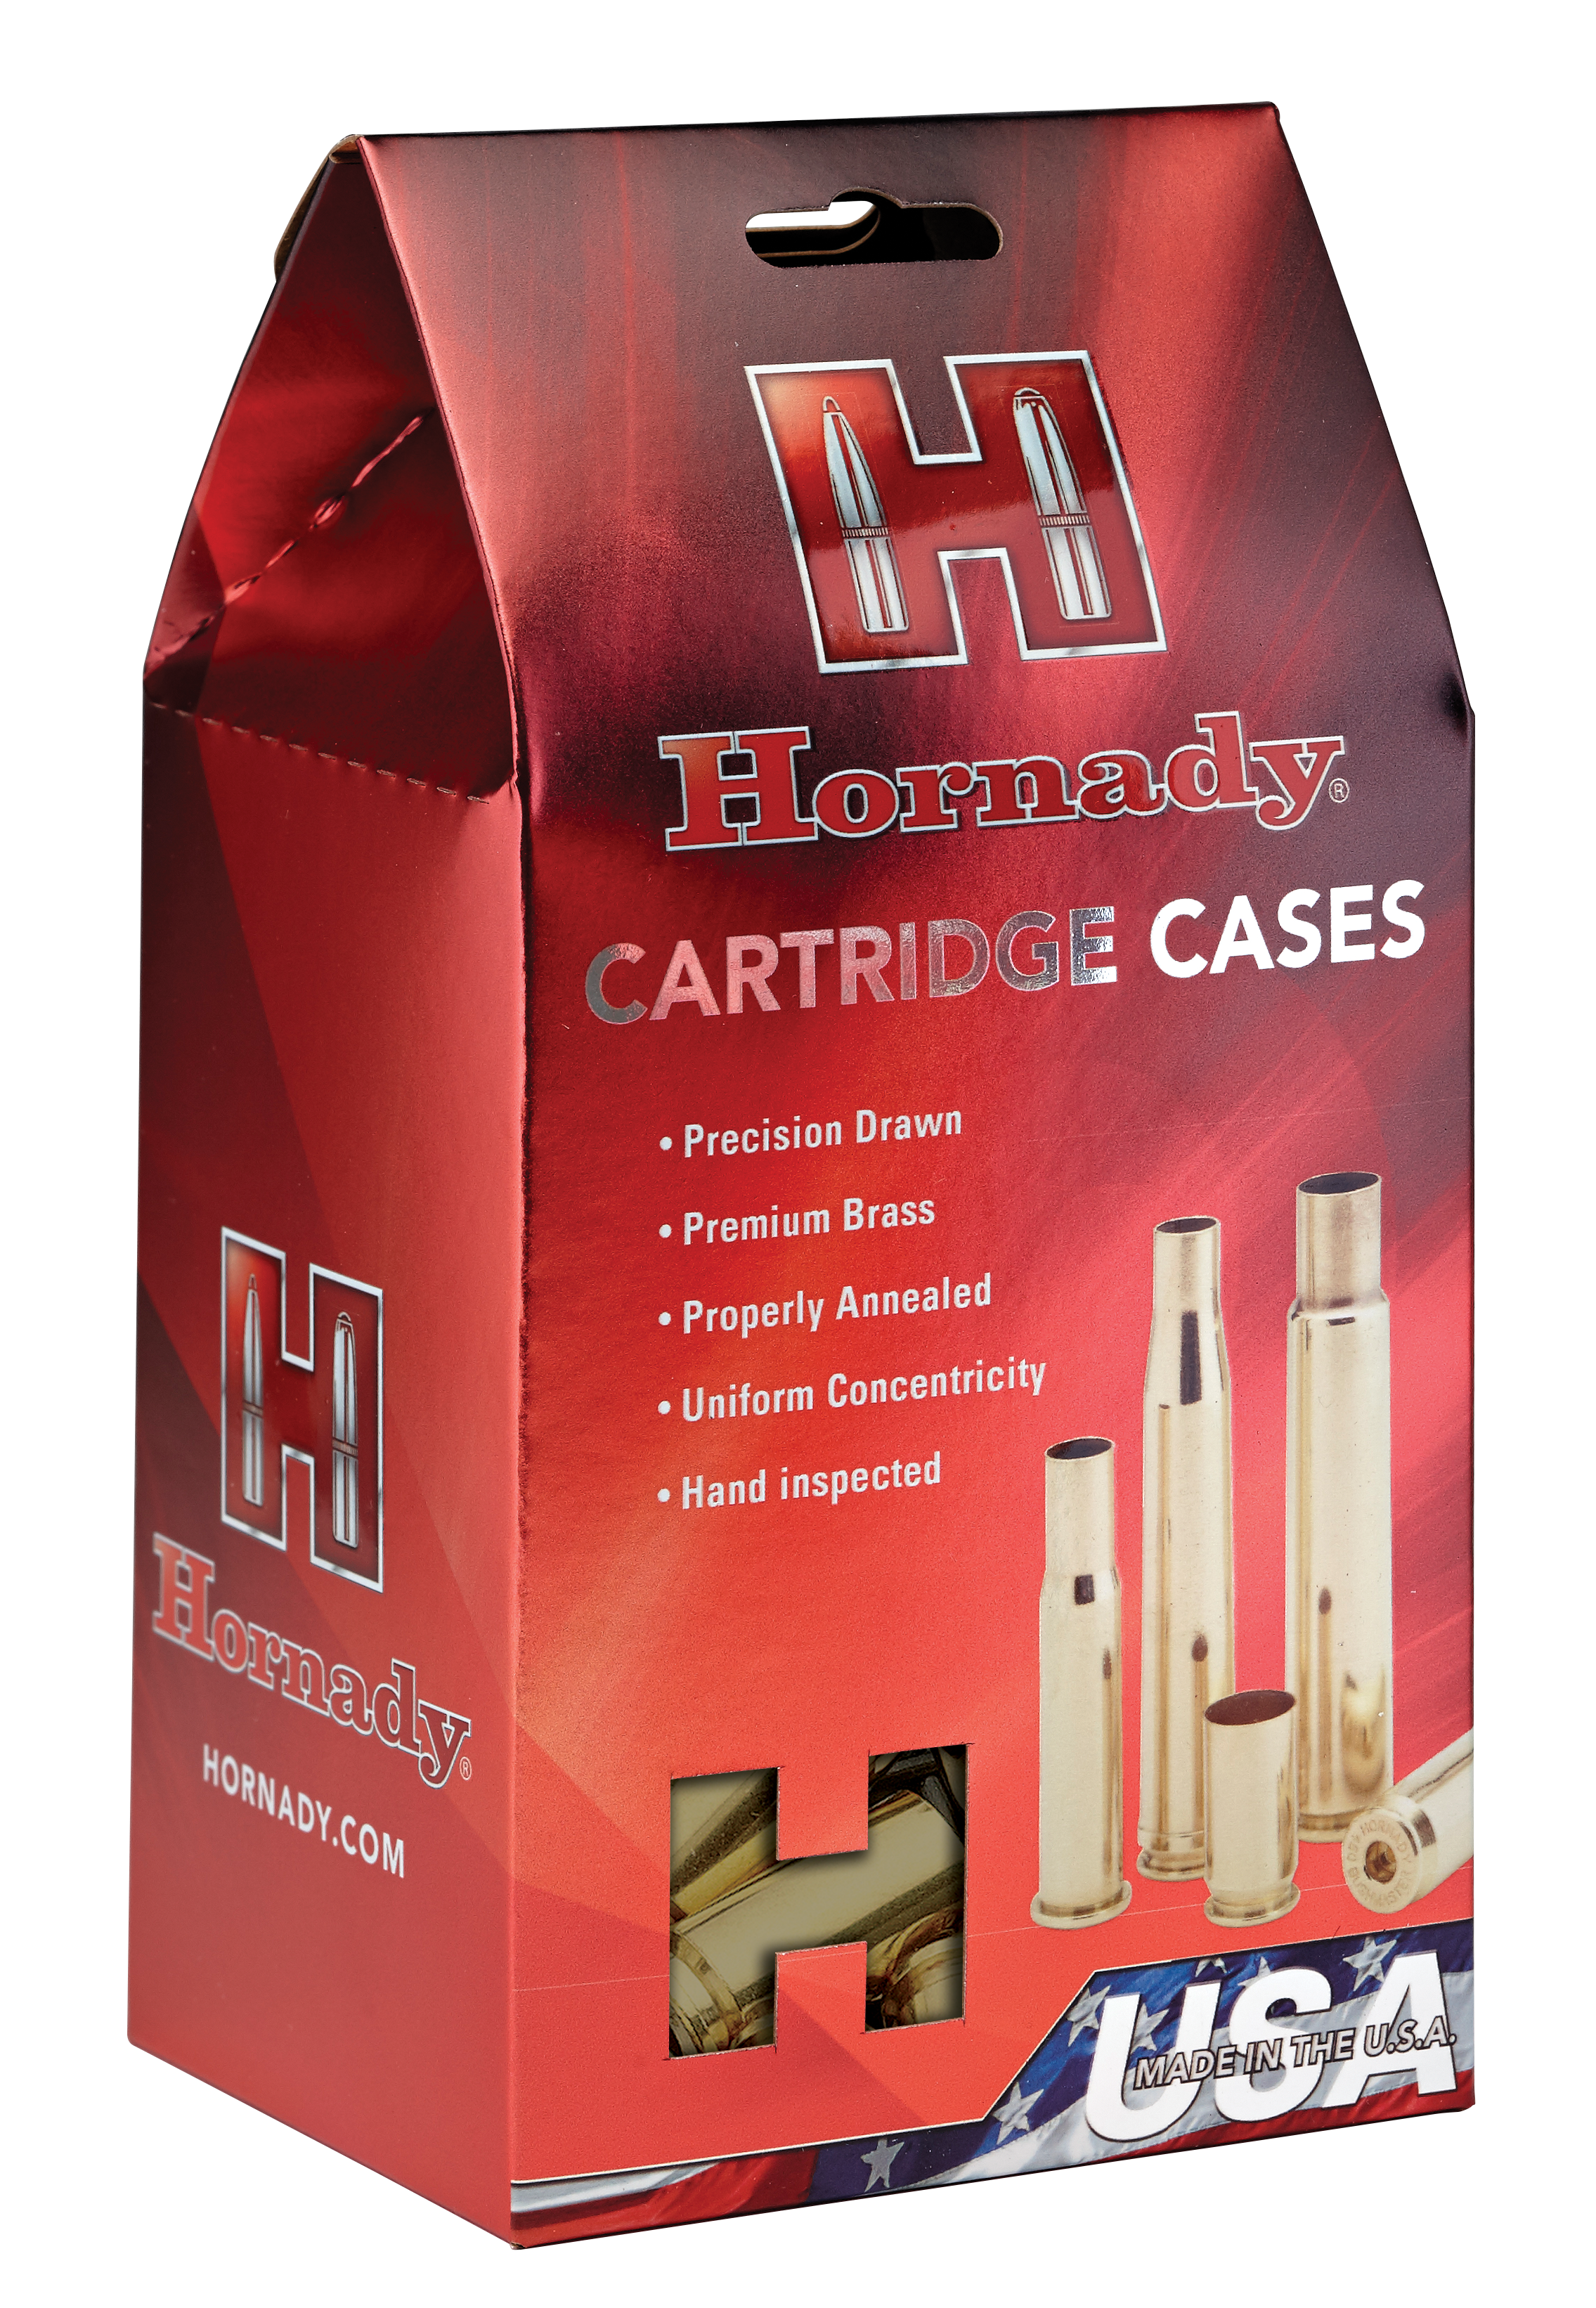 Hornady Rifle Brass - 33 Nosler - Per 20